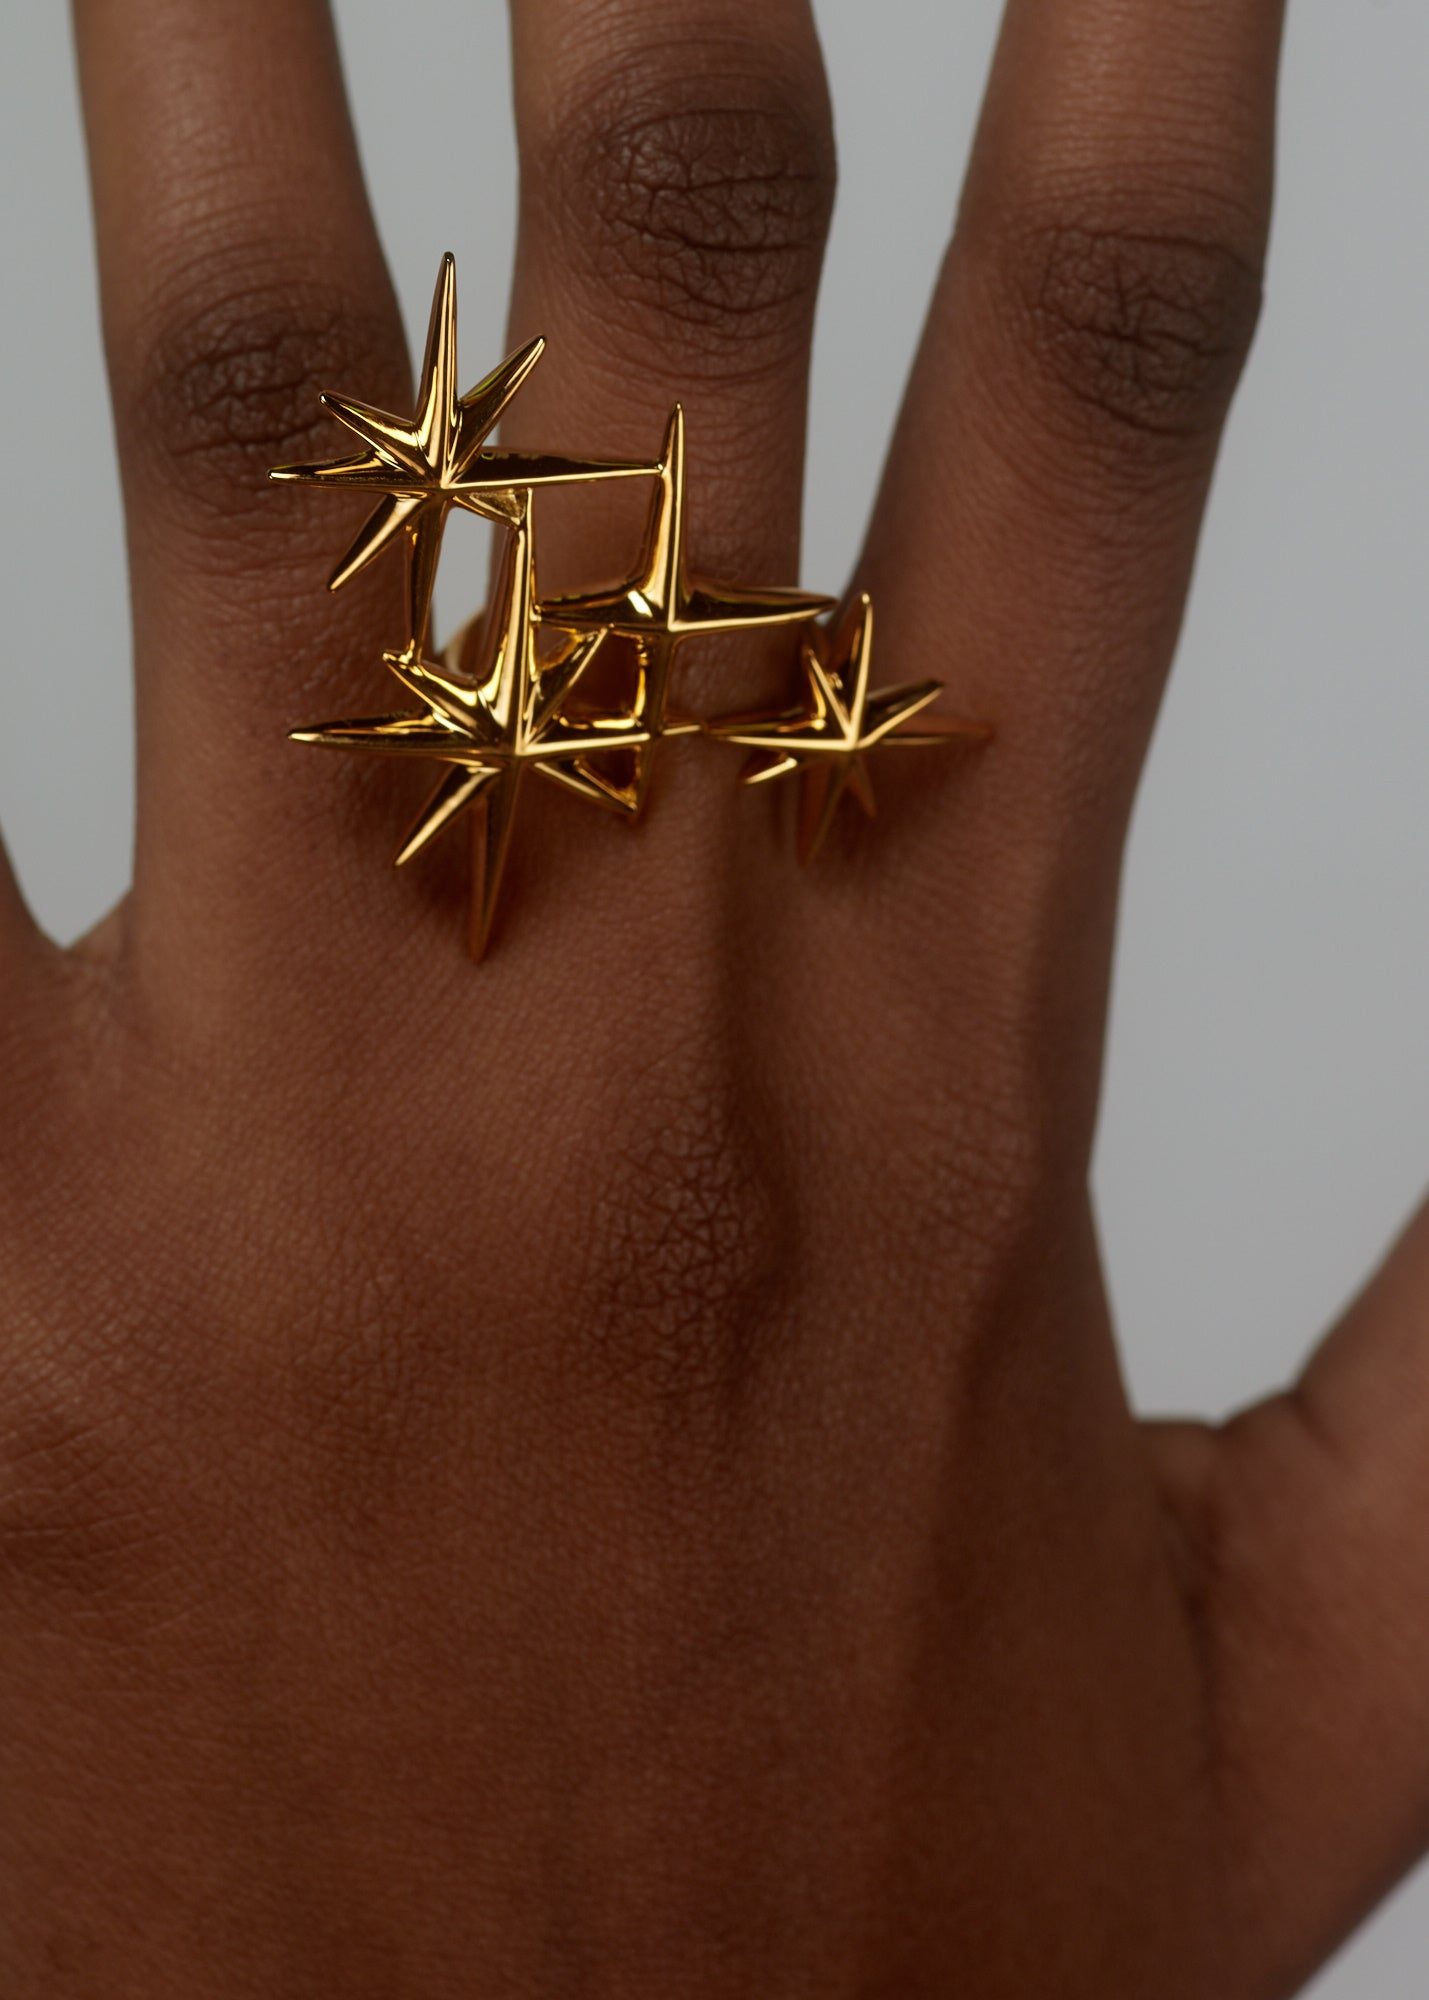 Constellation Ring (Gold) ACCESSORIES DI DU - NOLM - Clothes Online - nolmau.com - Sydney-Australia Online Shopping